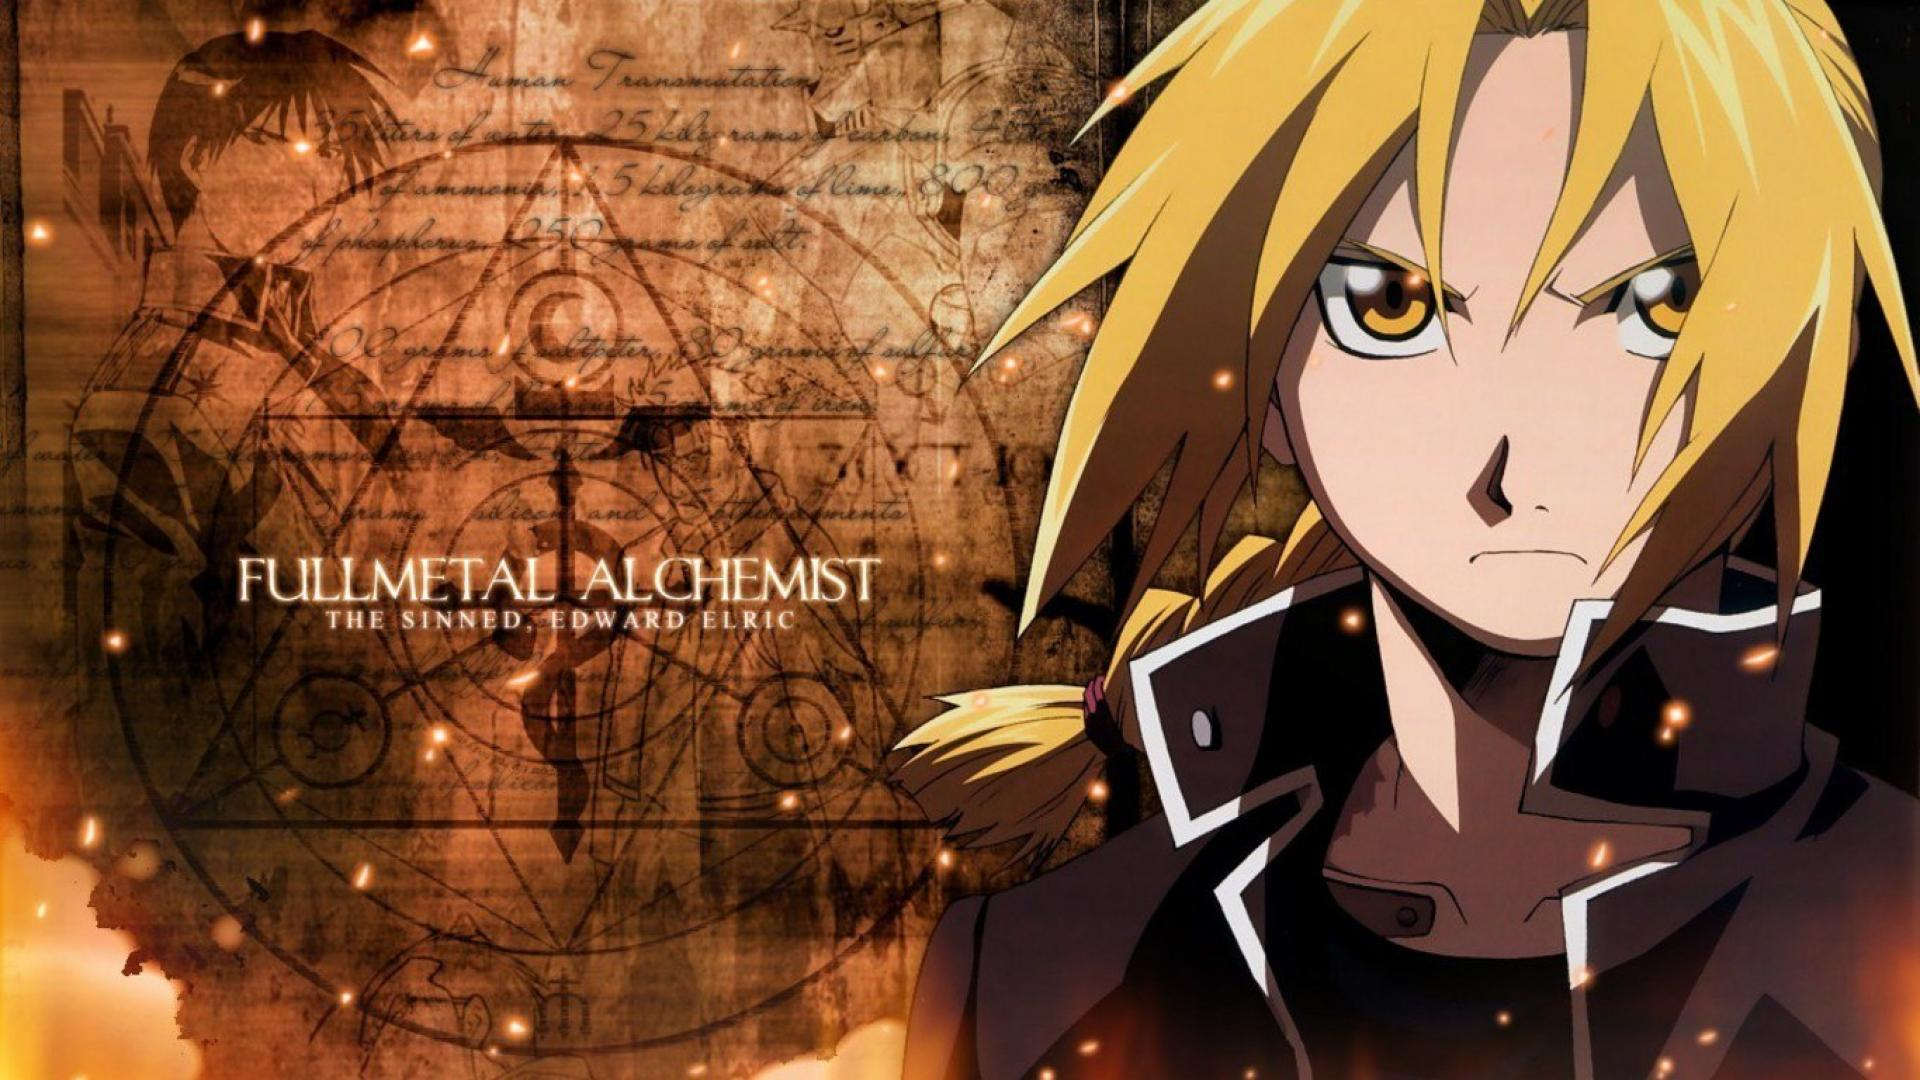 Fullmetal alchemist wallpaper 1366x768 HQ WALLPAPER   25526 1920x1080